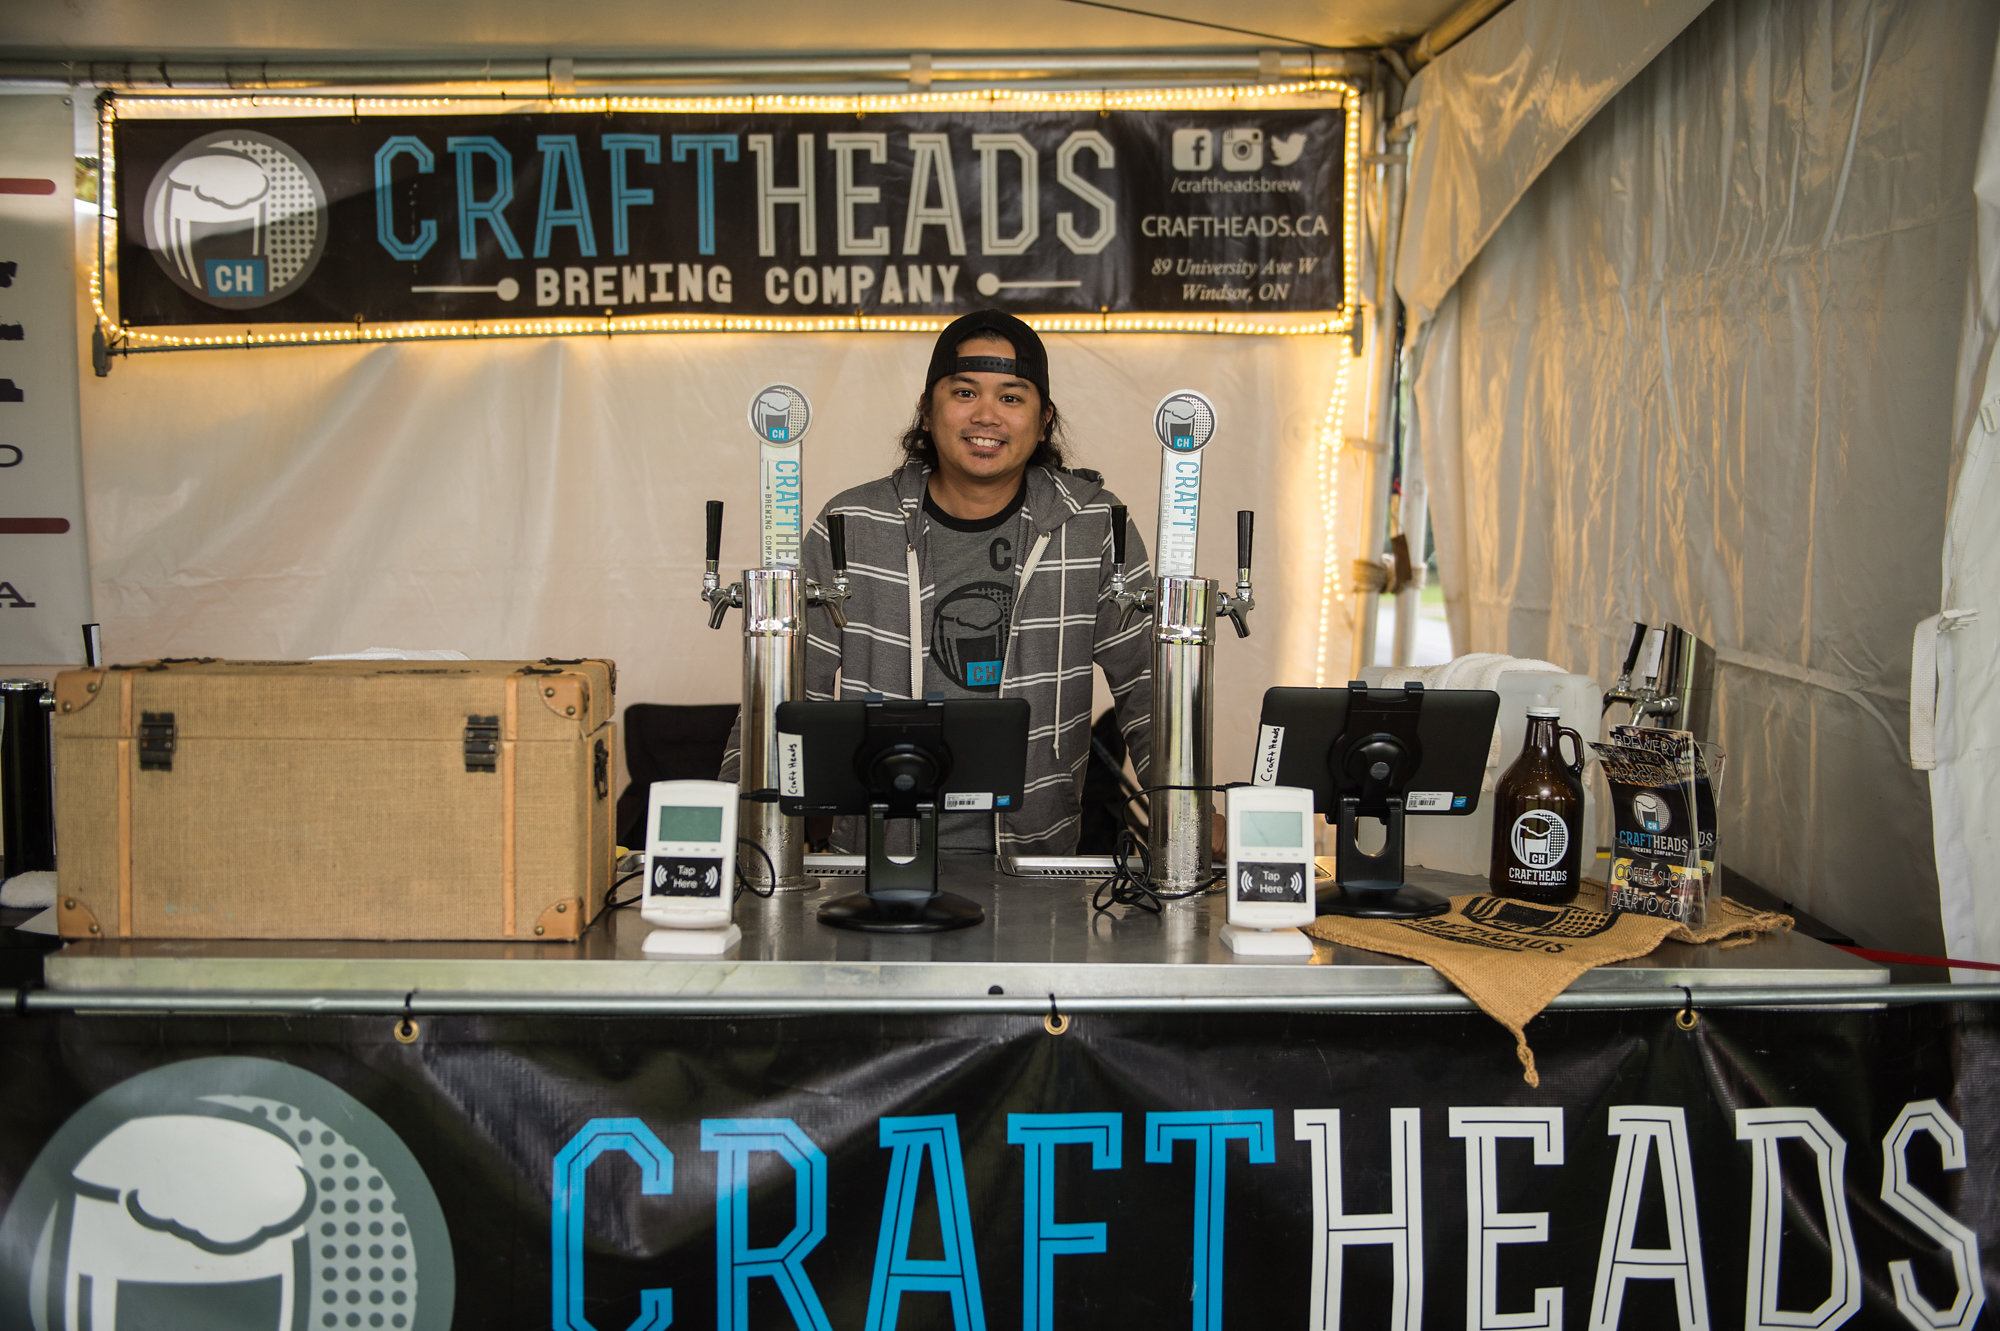 Bryan Datoc of Craft Heads Brewing Co. at the 2017 Windsor Craft Beer Festival.